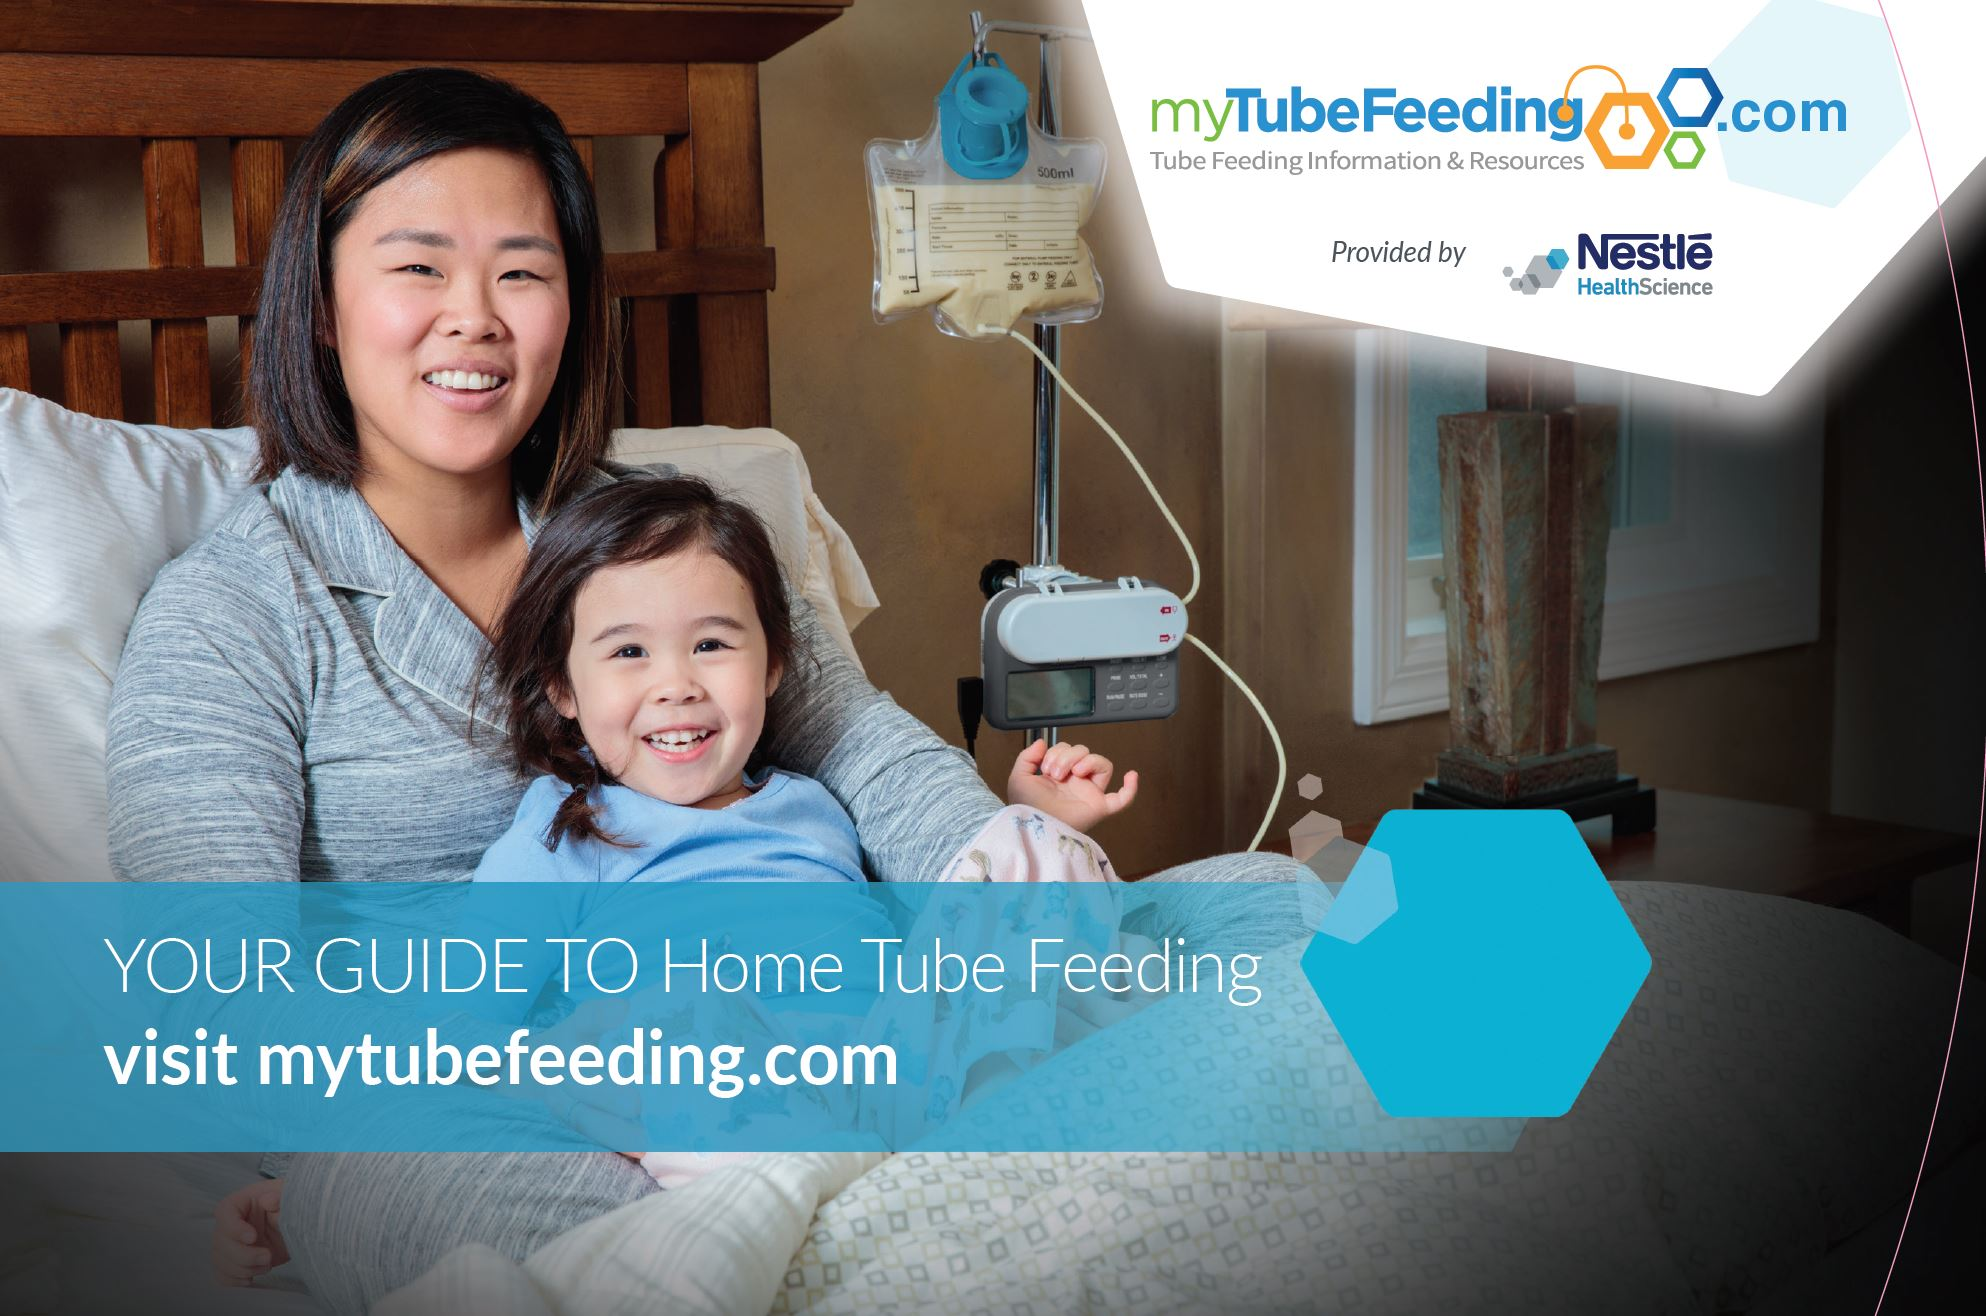 Your Guide to Home Tube Feeding